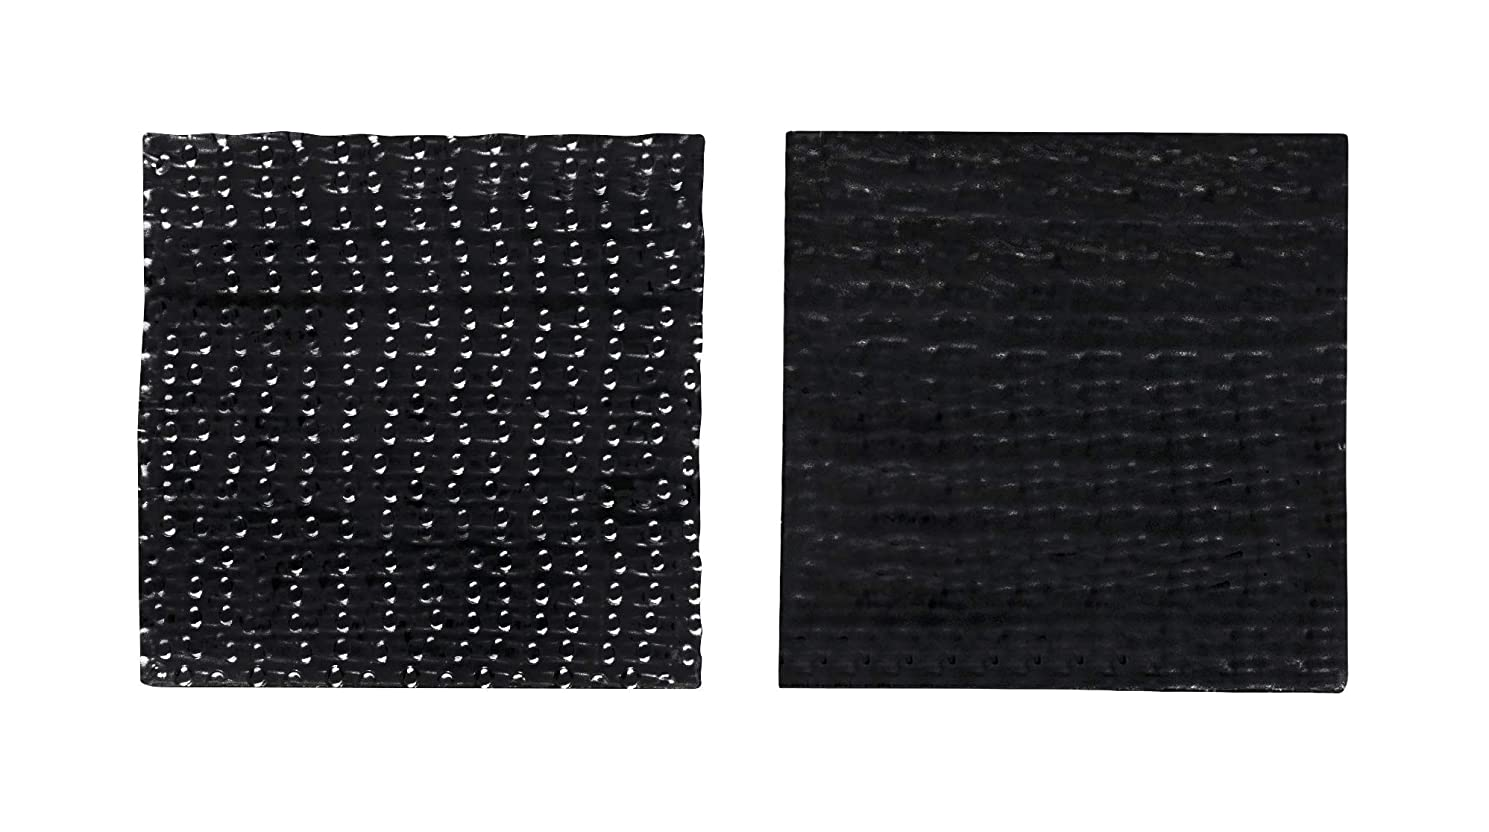 Scotch Extreme Fasteners 1 inch x 1 inch, Black, 27 Sets per pack,  ships in e-ecommerce packaging